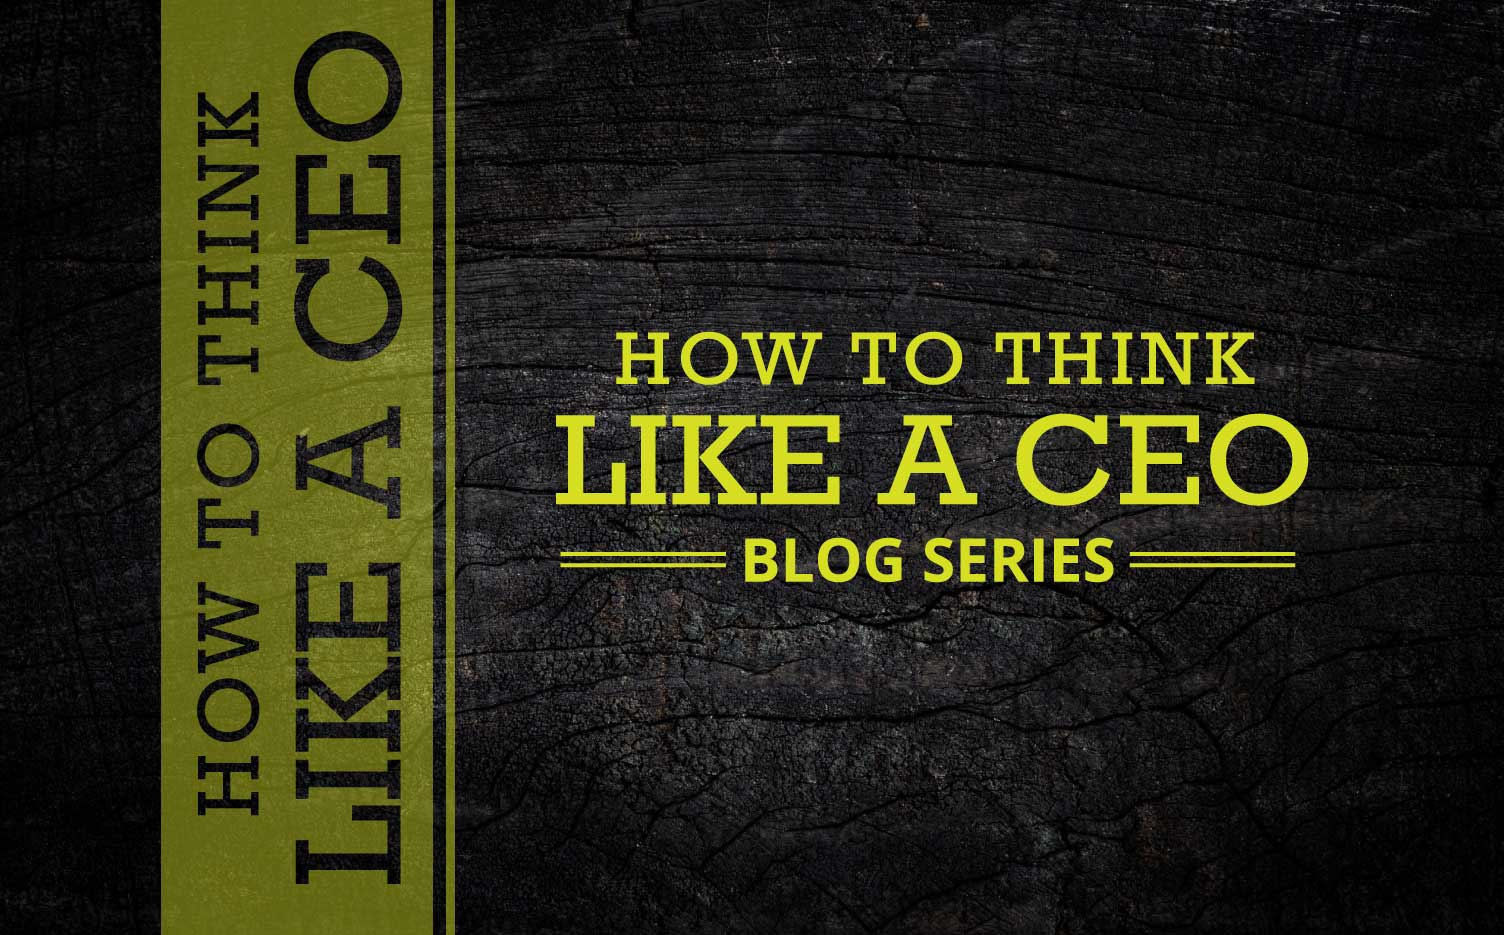 How to Think Like a CEO: Do You Have a Plan?